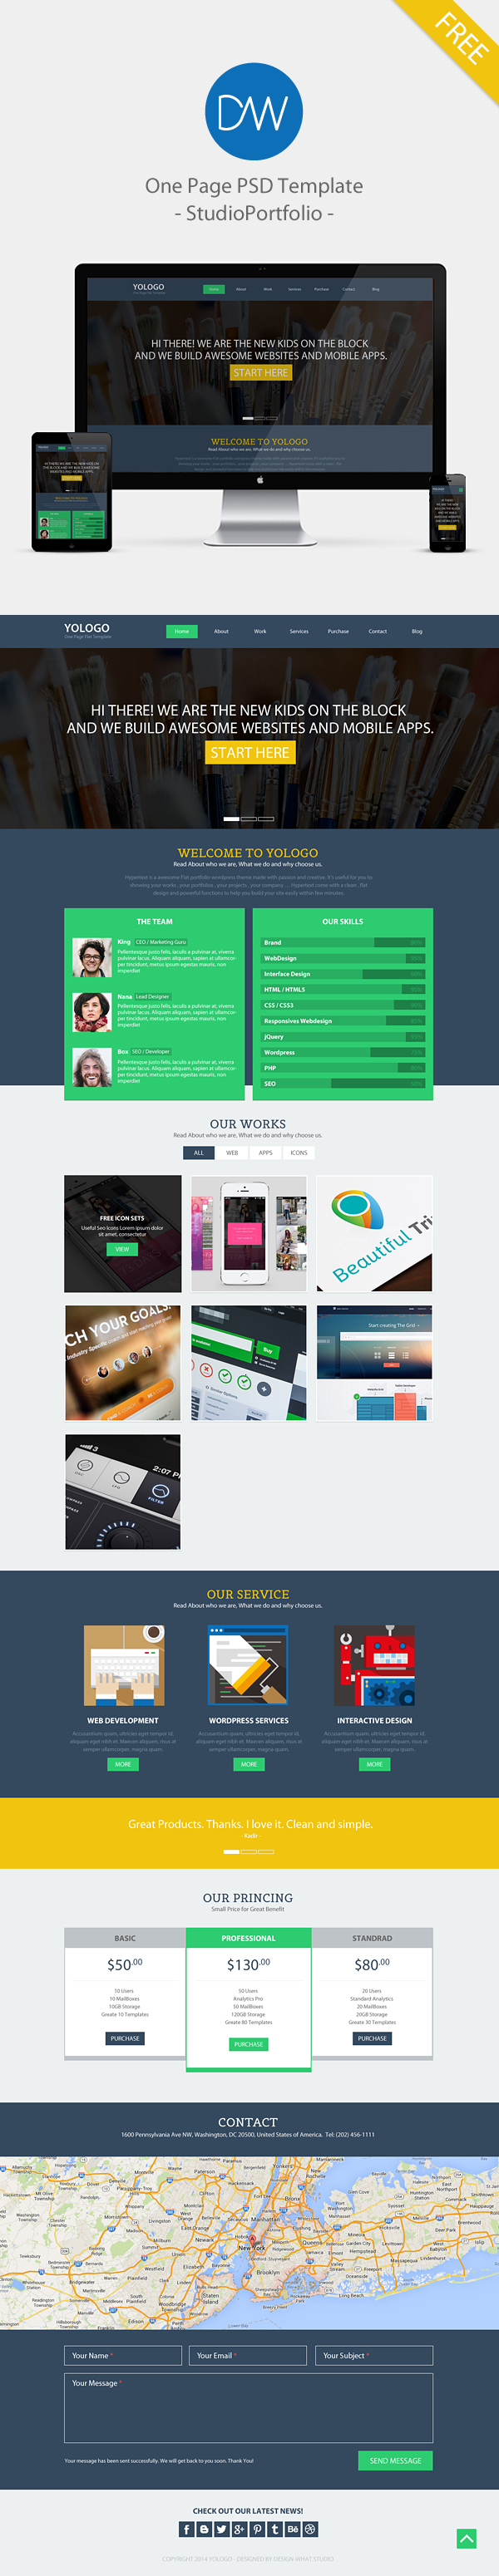 Free single page website template